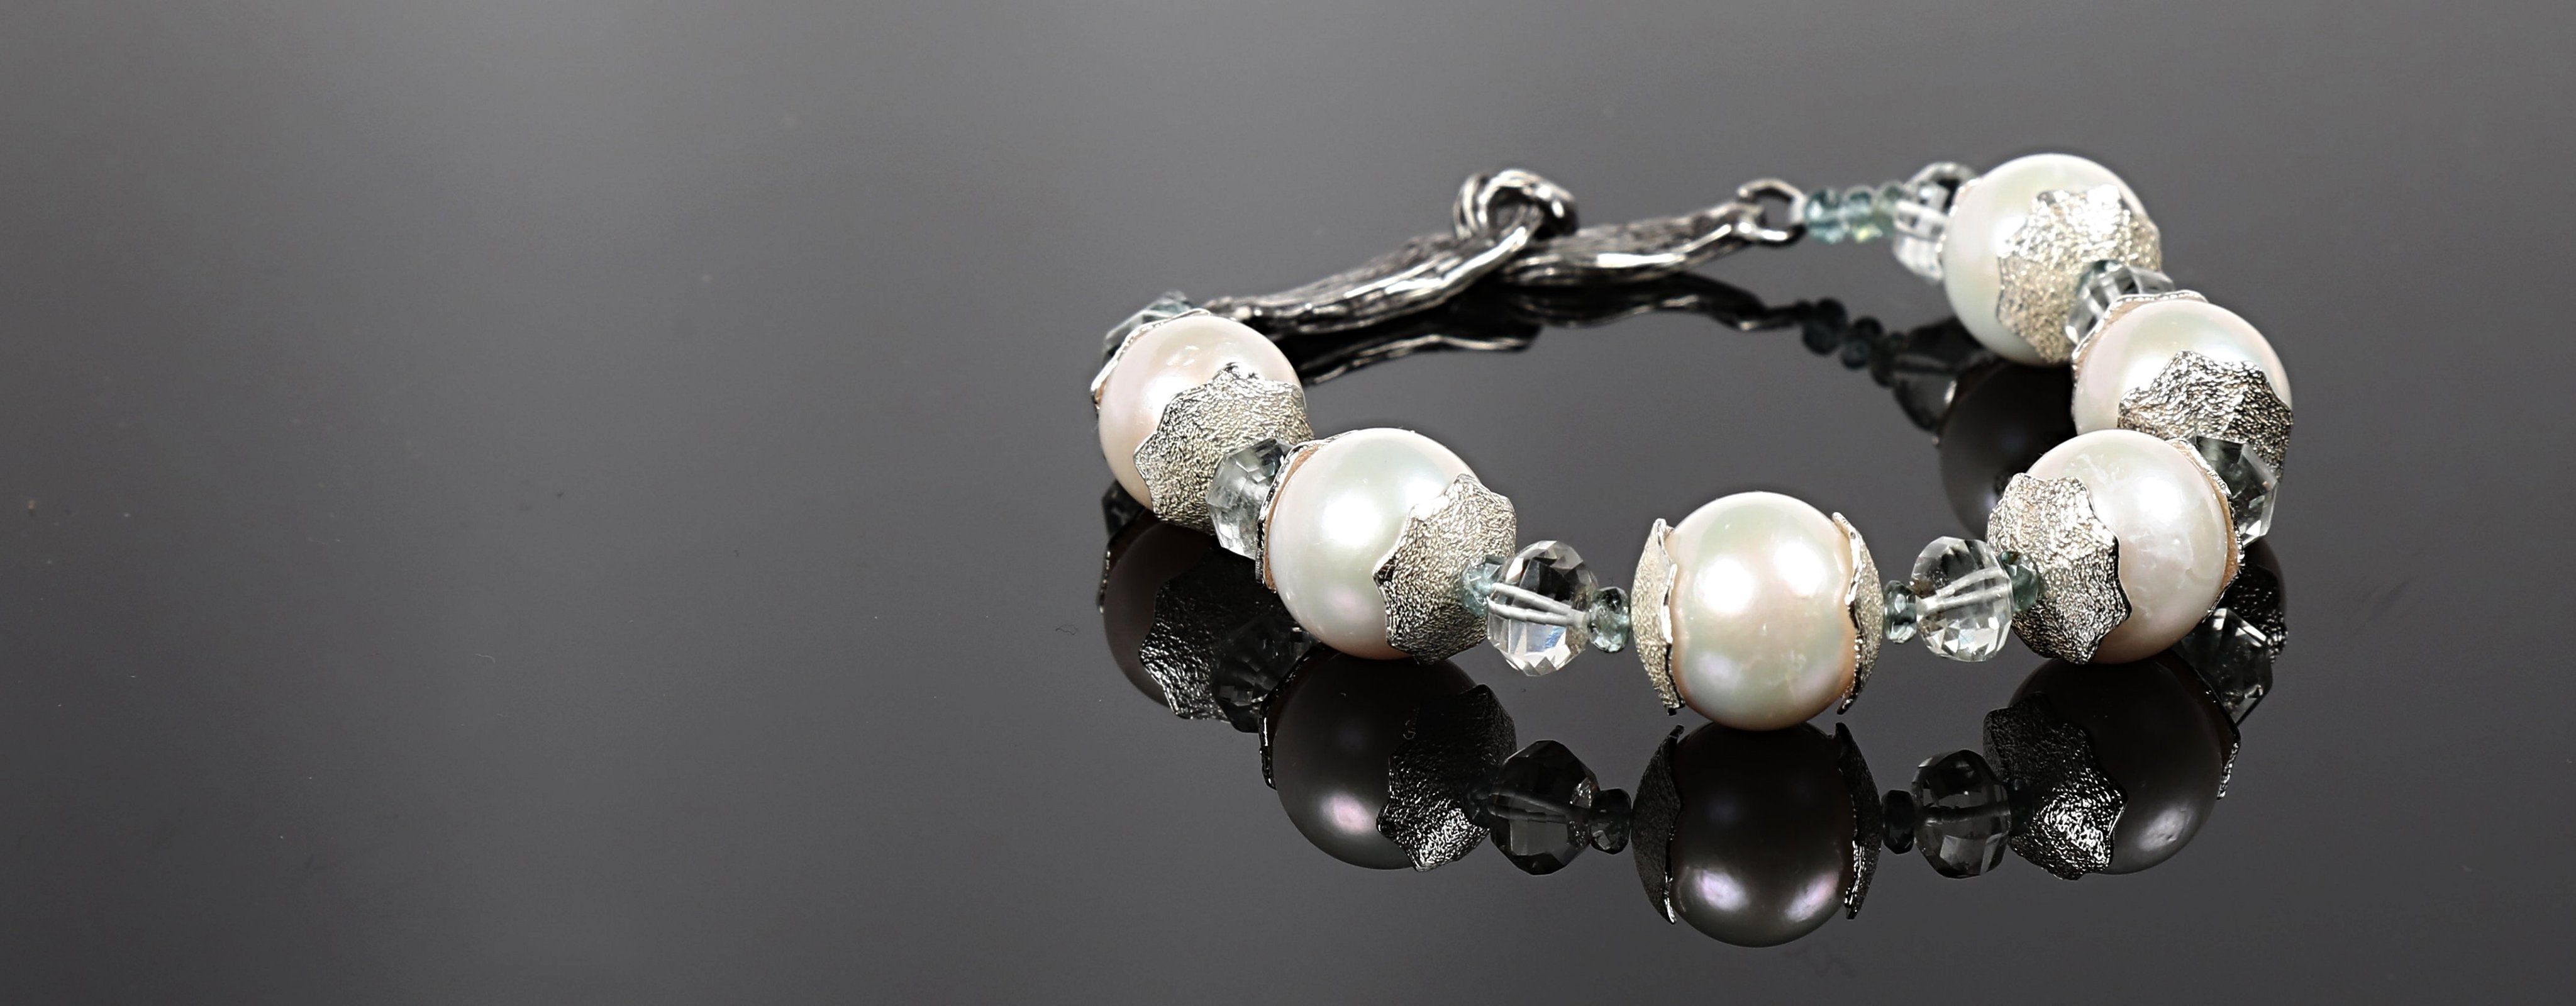 "White Orchid Studios | Made in the USA | Handcrafted couture jewelry inspired by nature. |  Beautiful freshwater pearls bounded by our hand-crafted sterling spacers, carved prasiolite and apatite, closed by our hand-carved vanilla bean clasp, 8.5"" $614"